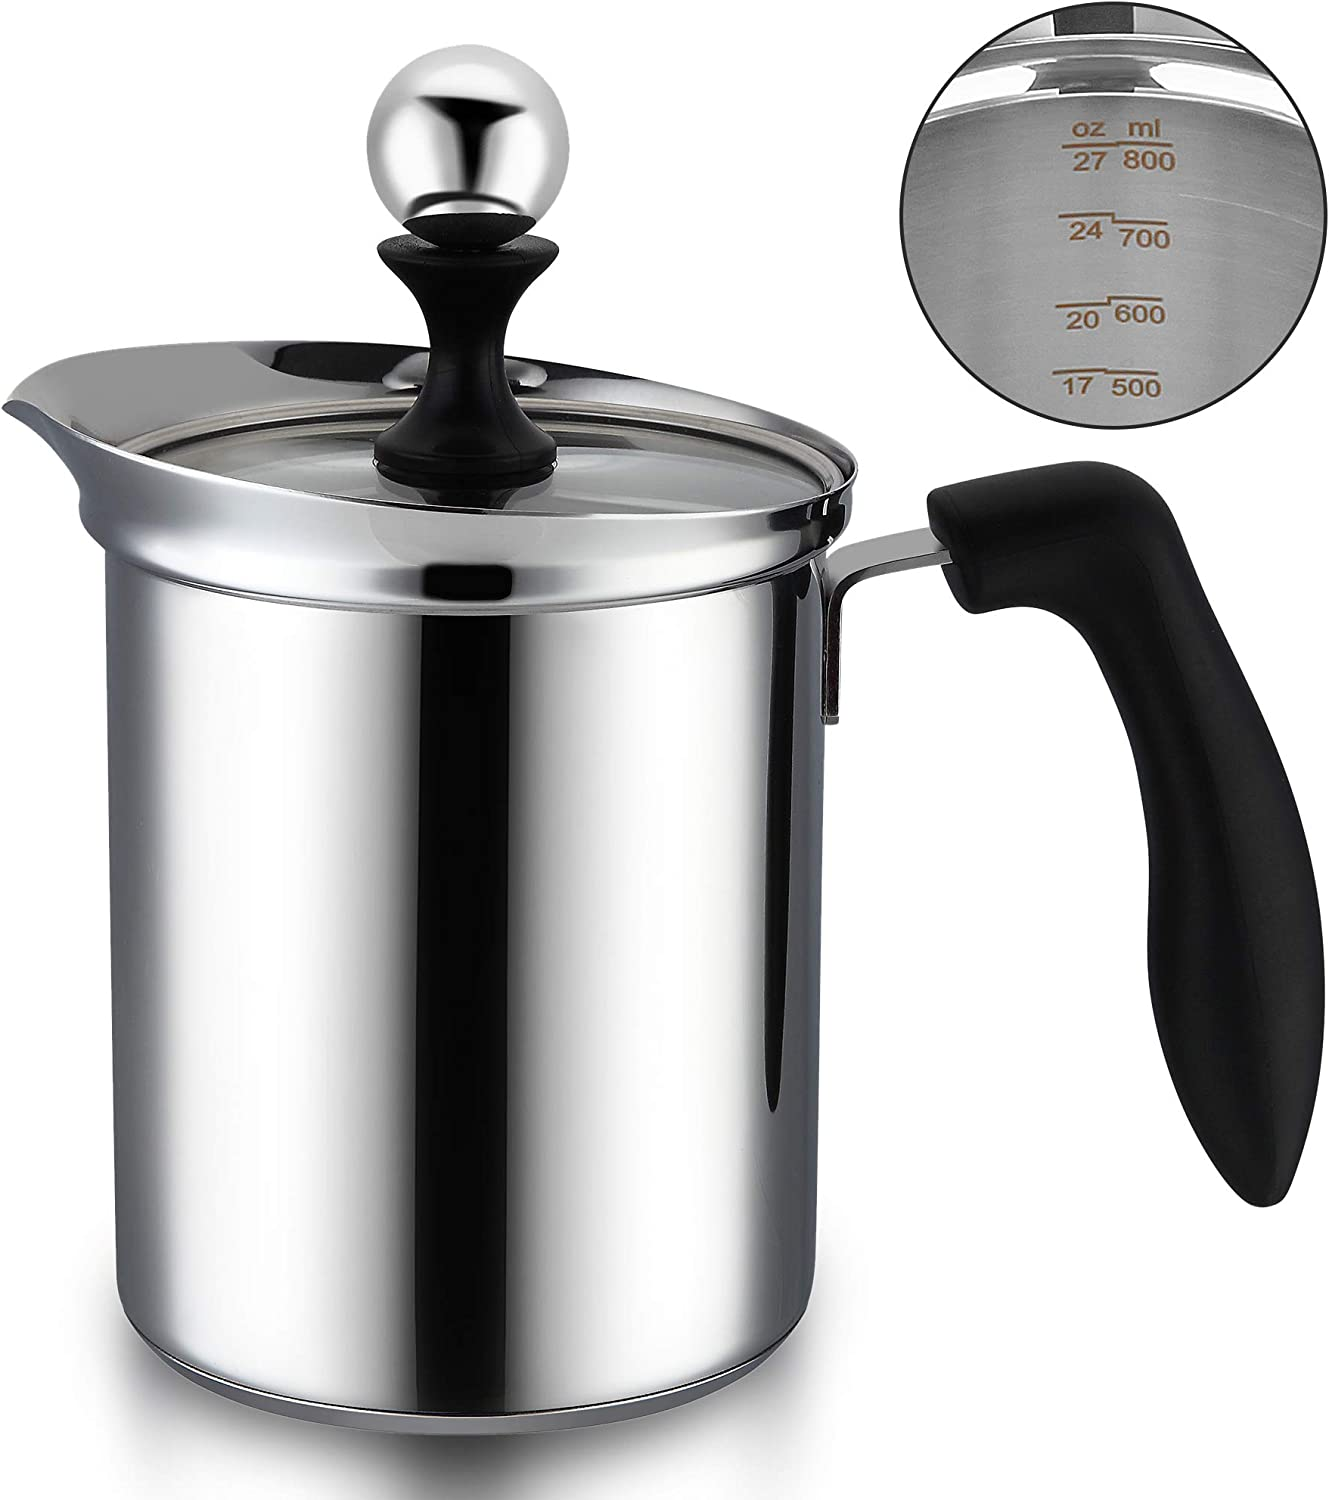 ENLOY 27 Oz Manual Milk Frother, Stainless Steel Handheld Milk Frothing Pitchers, Hand Pump Milk Foamer with Filter Screen for Milk, Coffee Cappuccino, Latte Hot Chocolate, 800ml